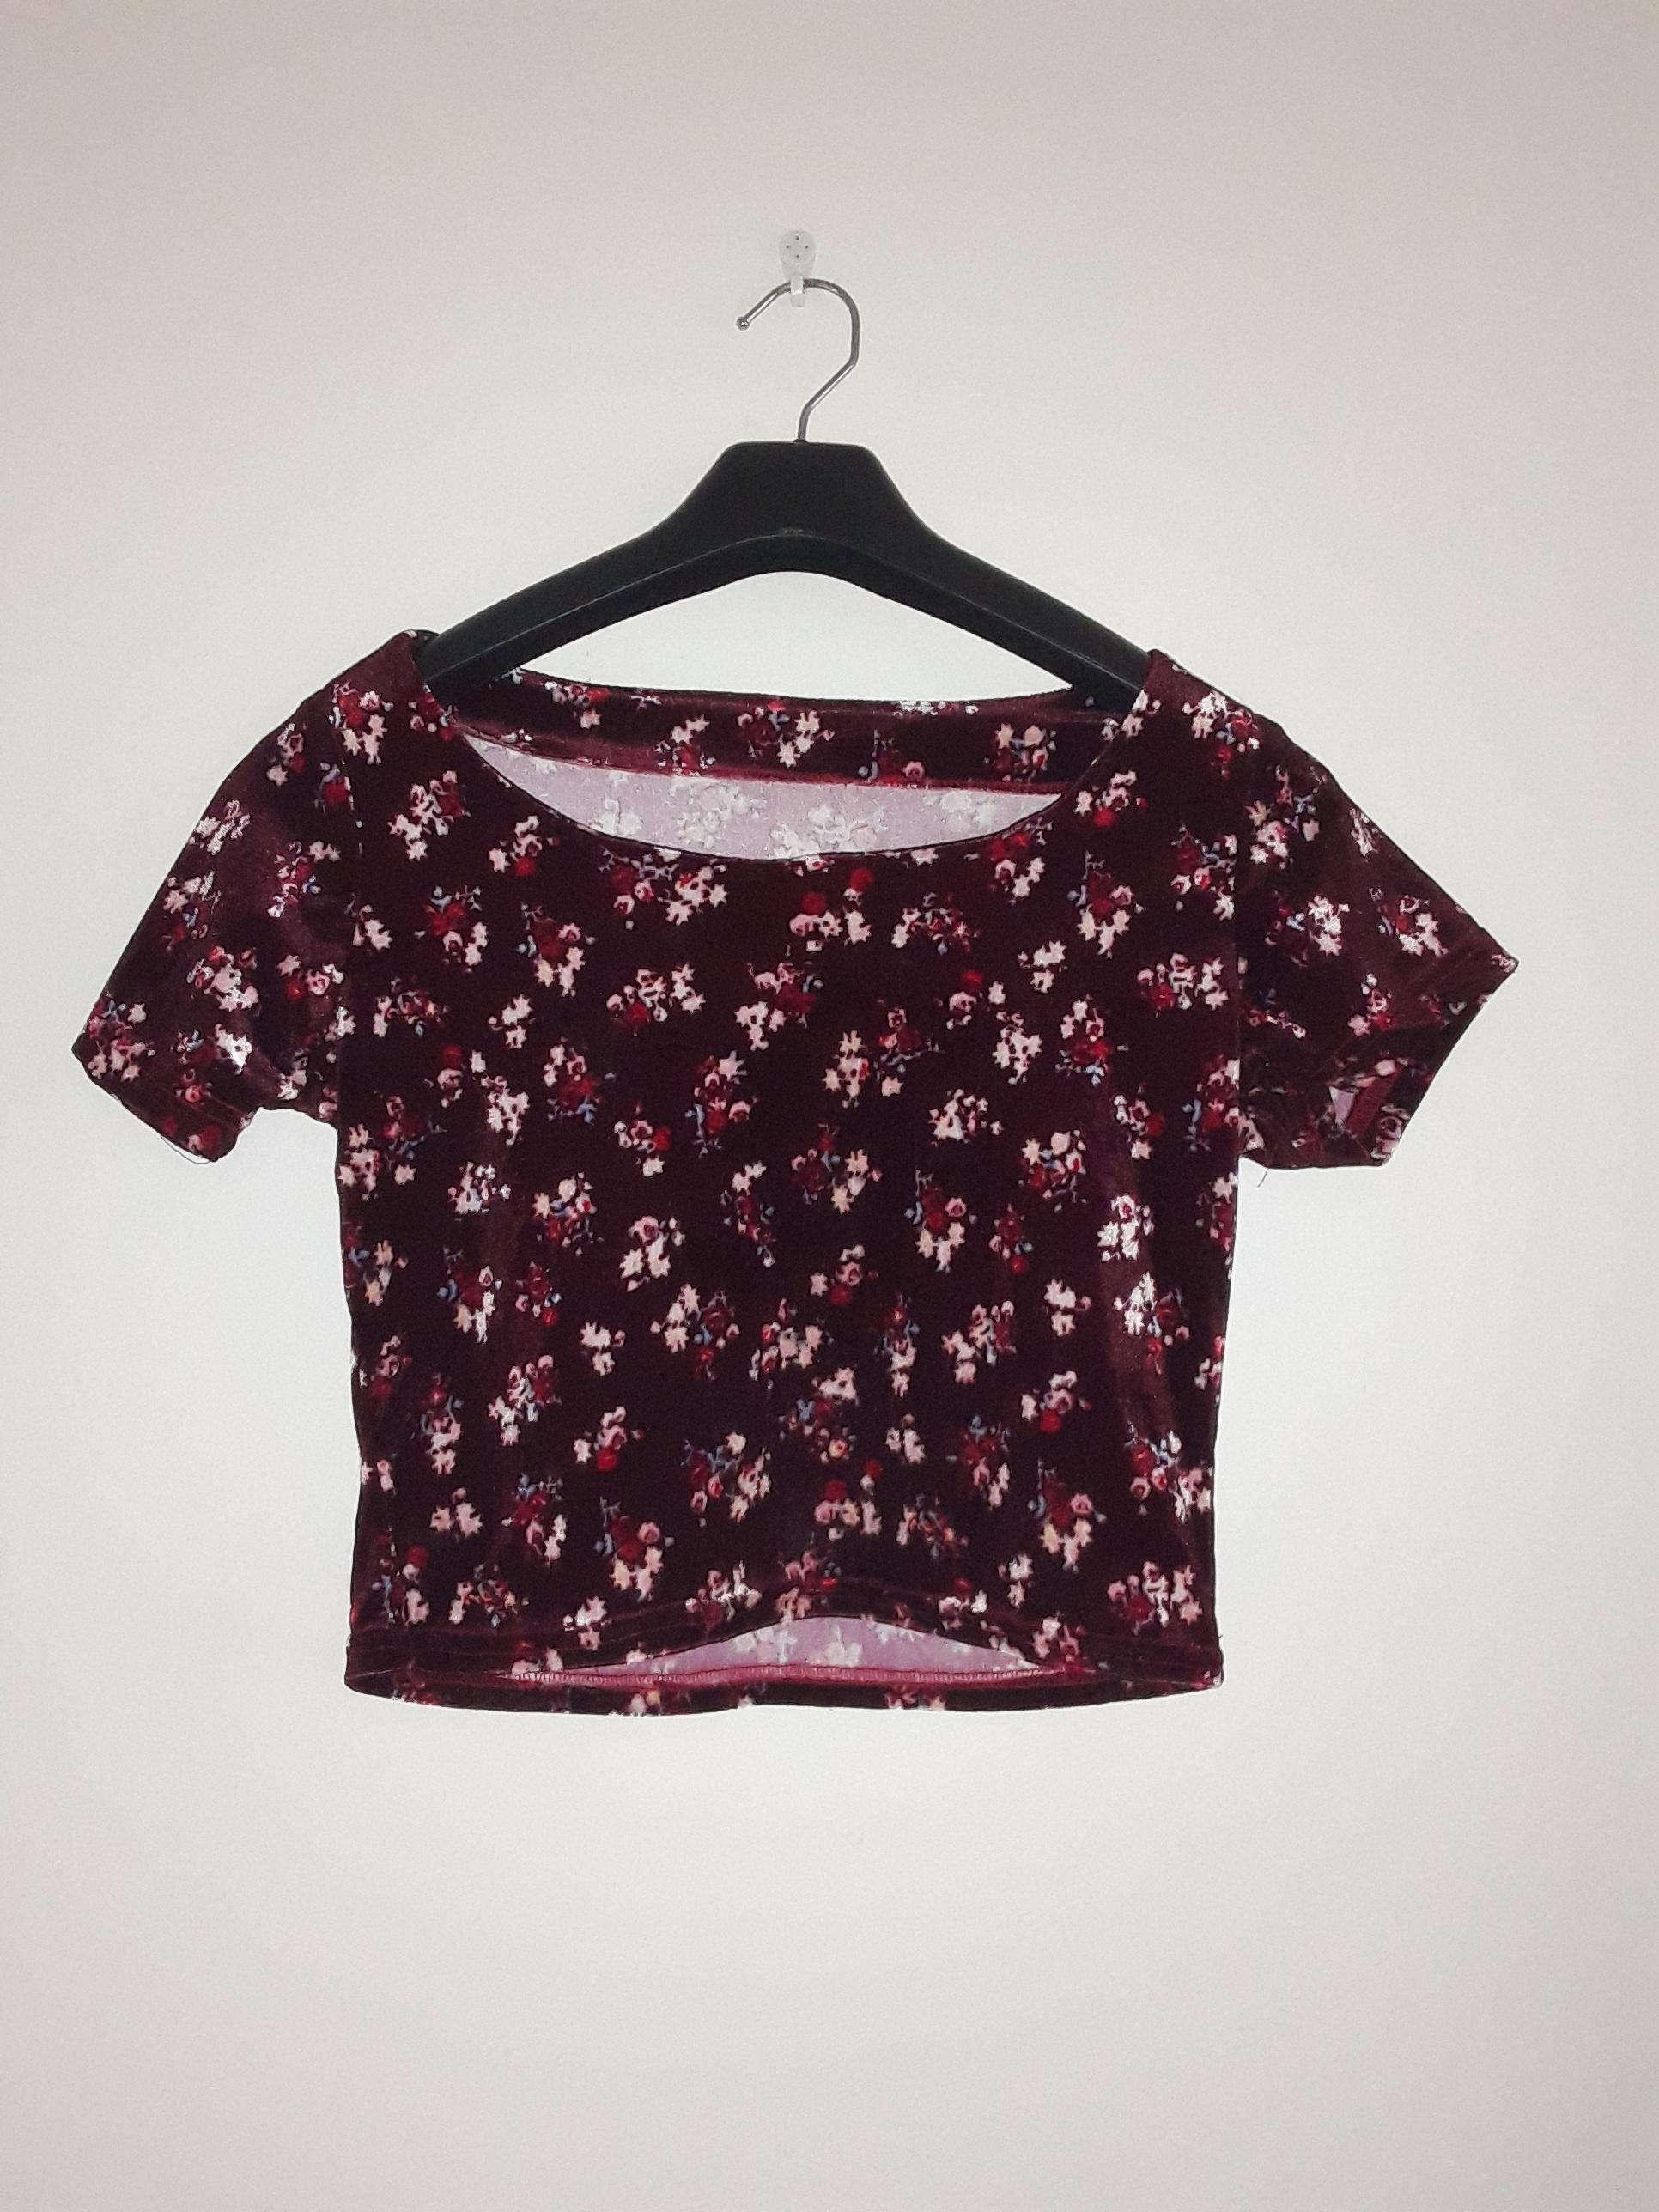 Maroon Floral Croptop and skirt combo